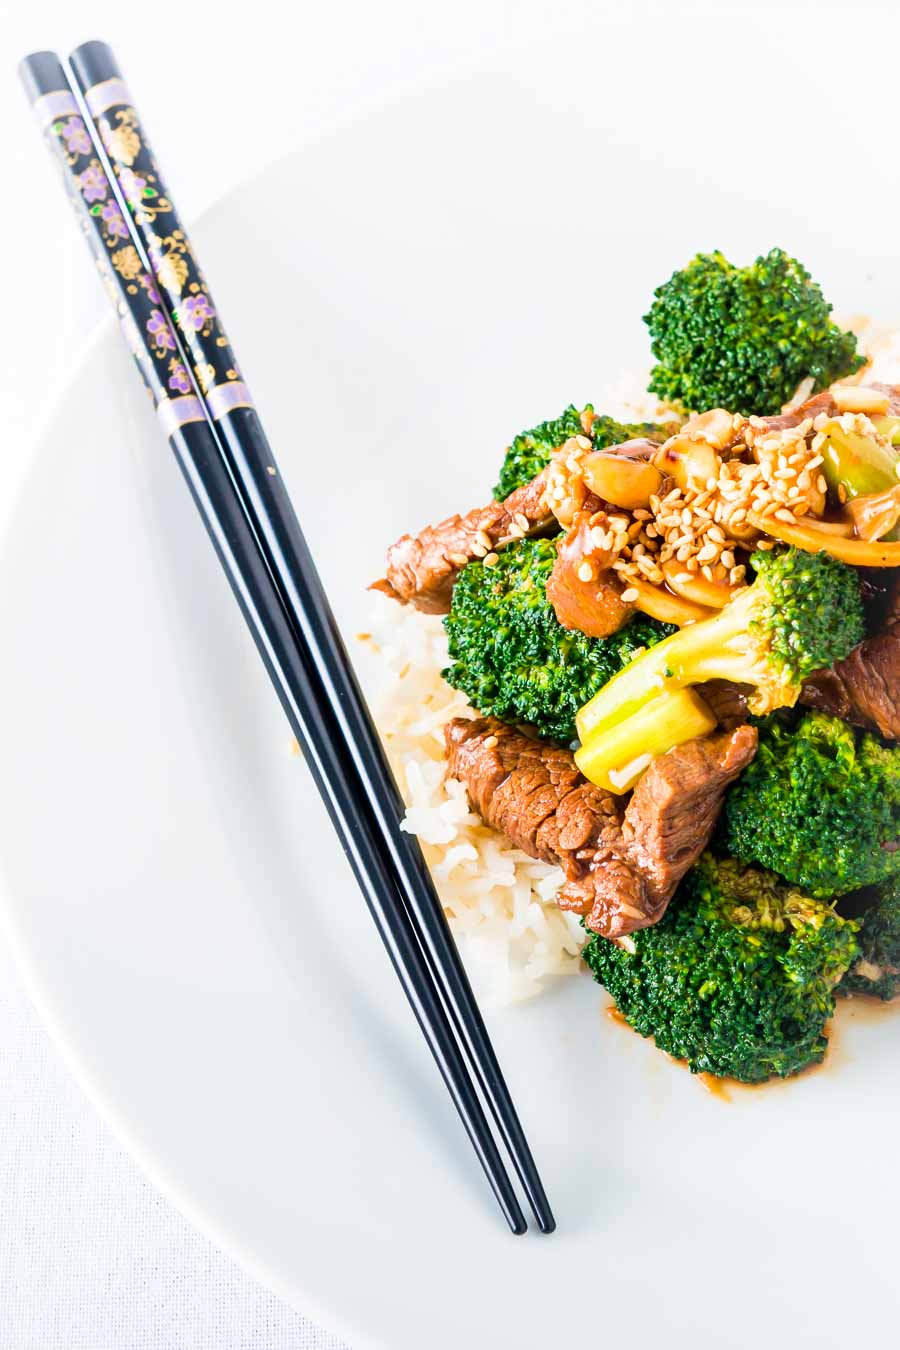 Beef and Broccoli Stir Fry is one of the most popular takeaway dishes, my version uses all of the broccoli and is super quick.